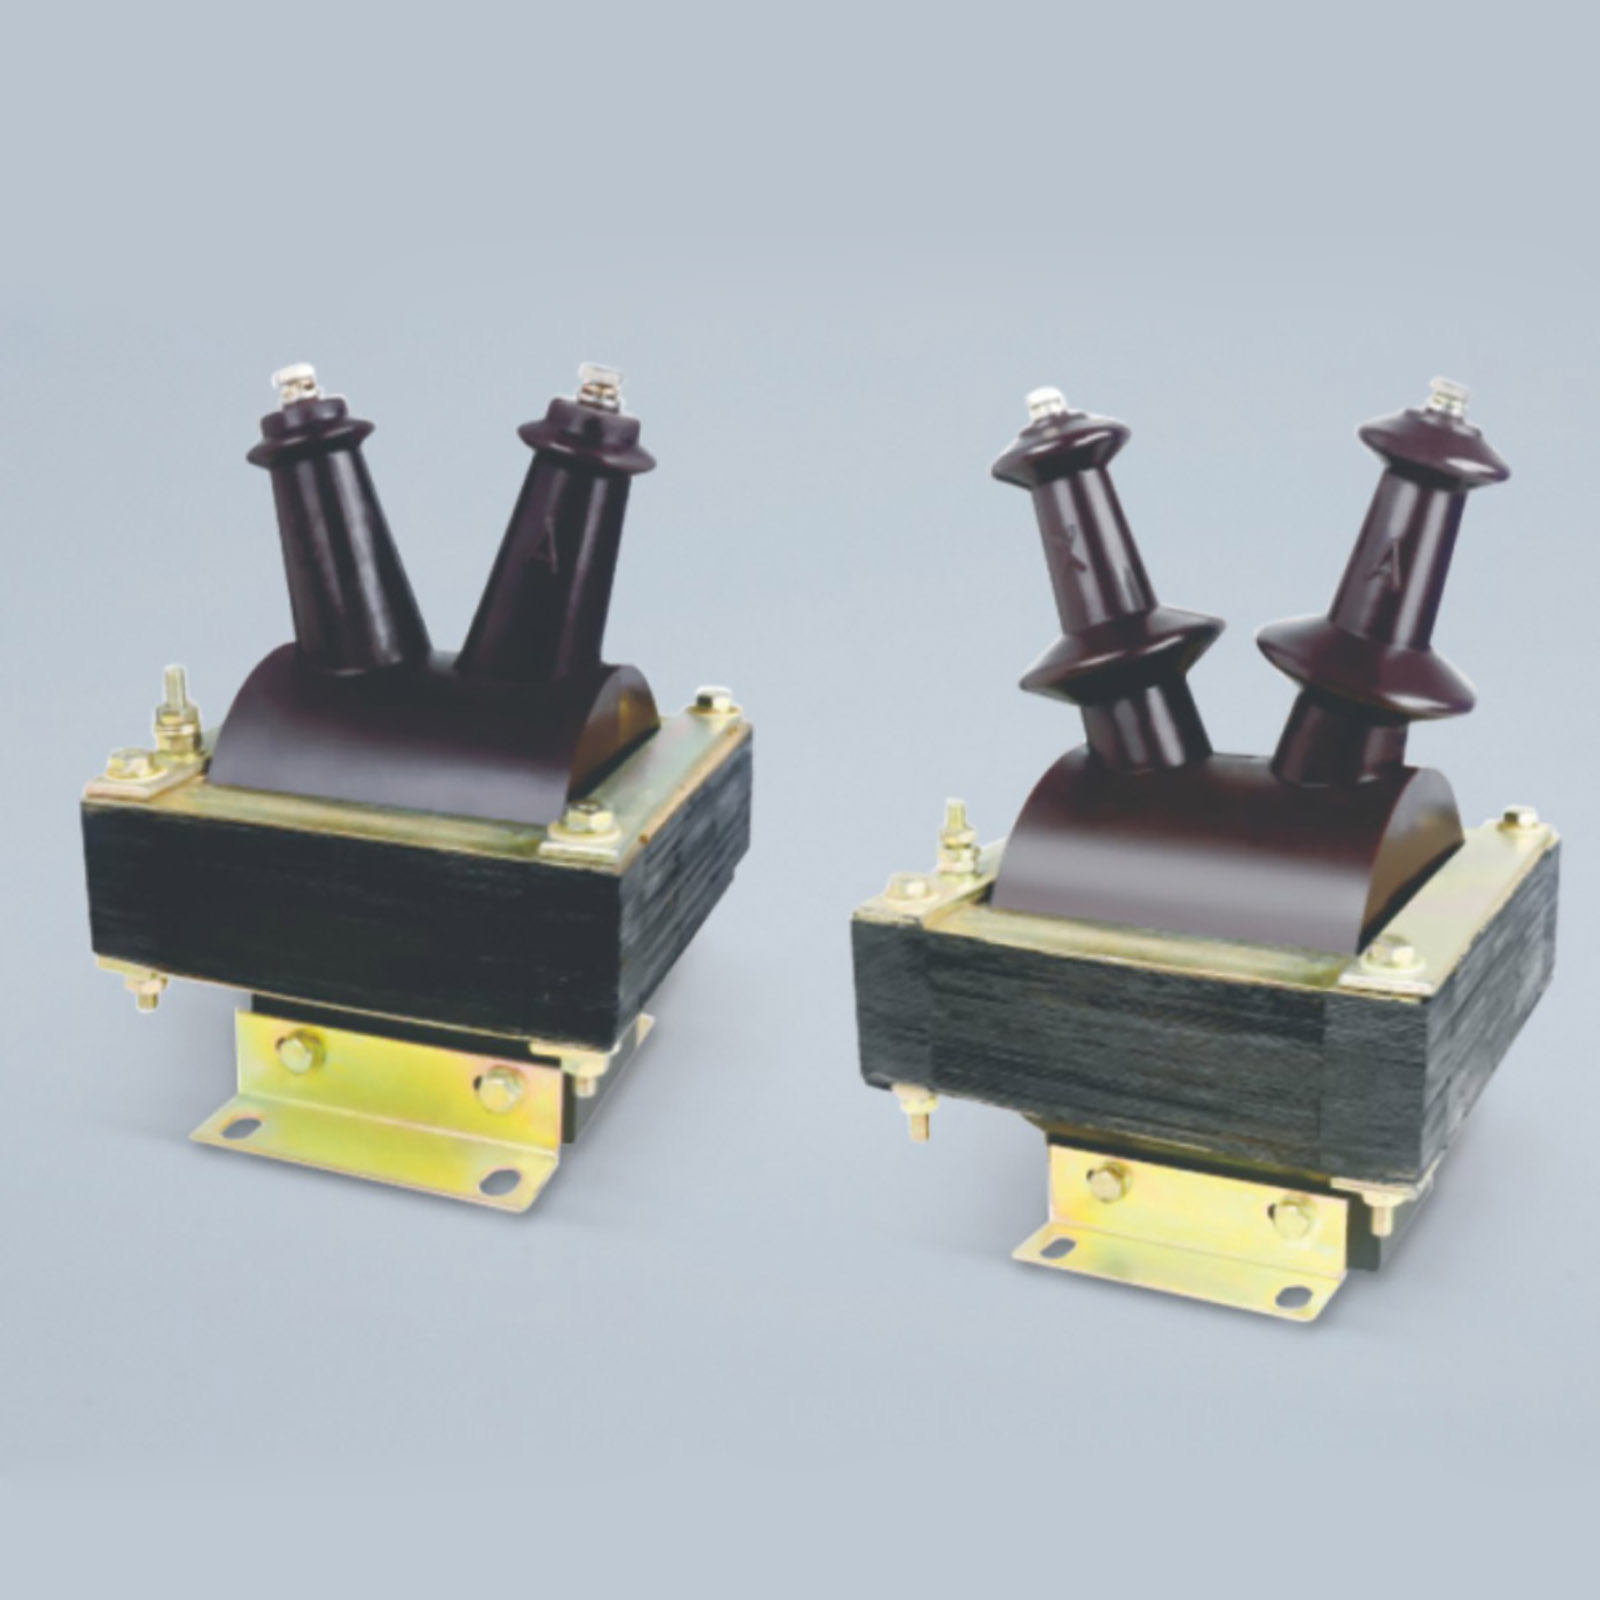 JDZ(J)-3,6,10 Single-phase, semi-encolsed voltage transformers